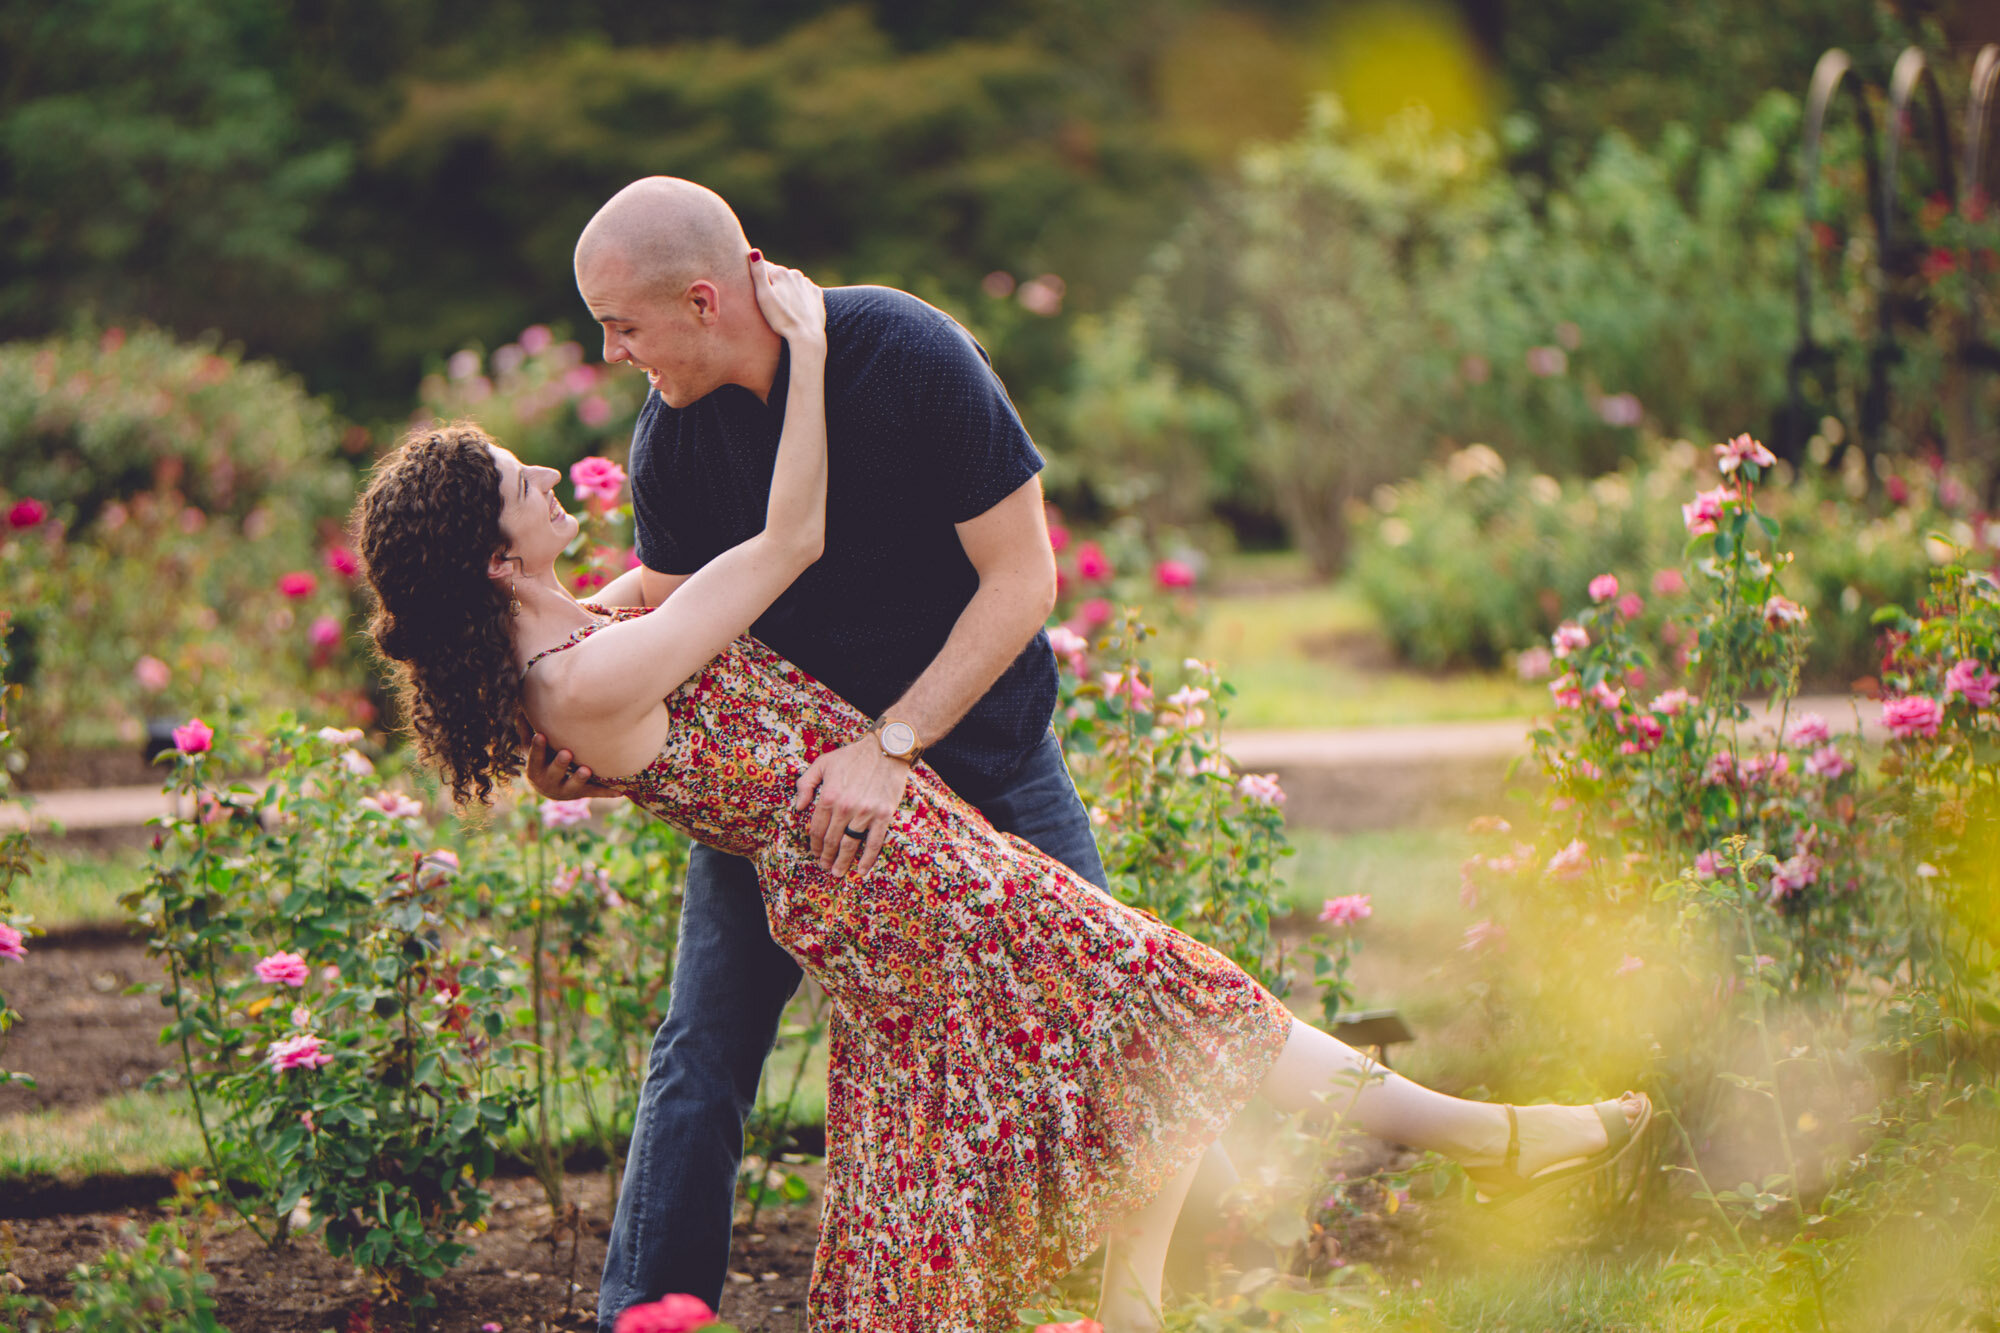 Bon Air Park Rose Garden Engagement Photos-16.jpg